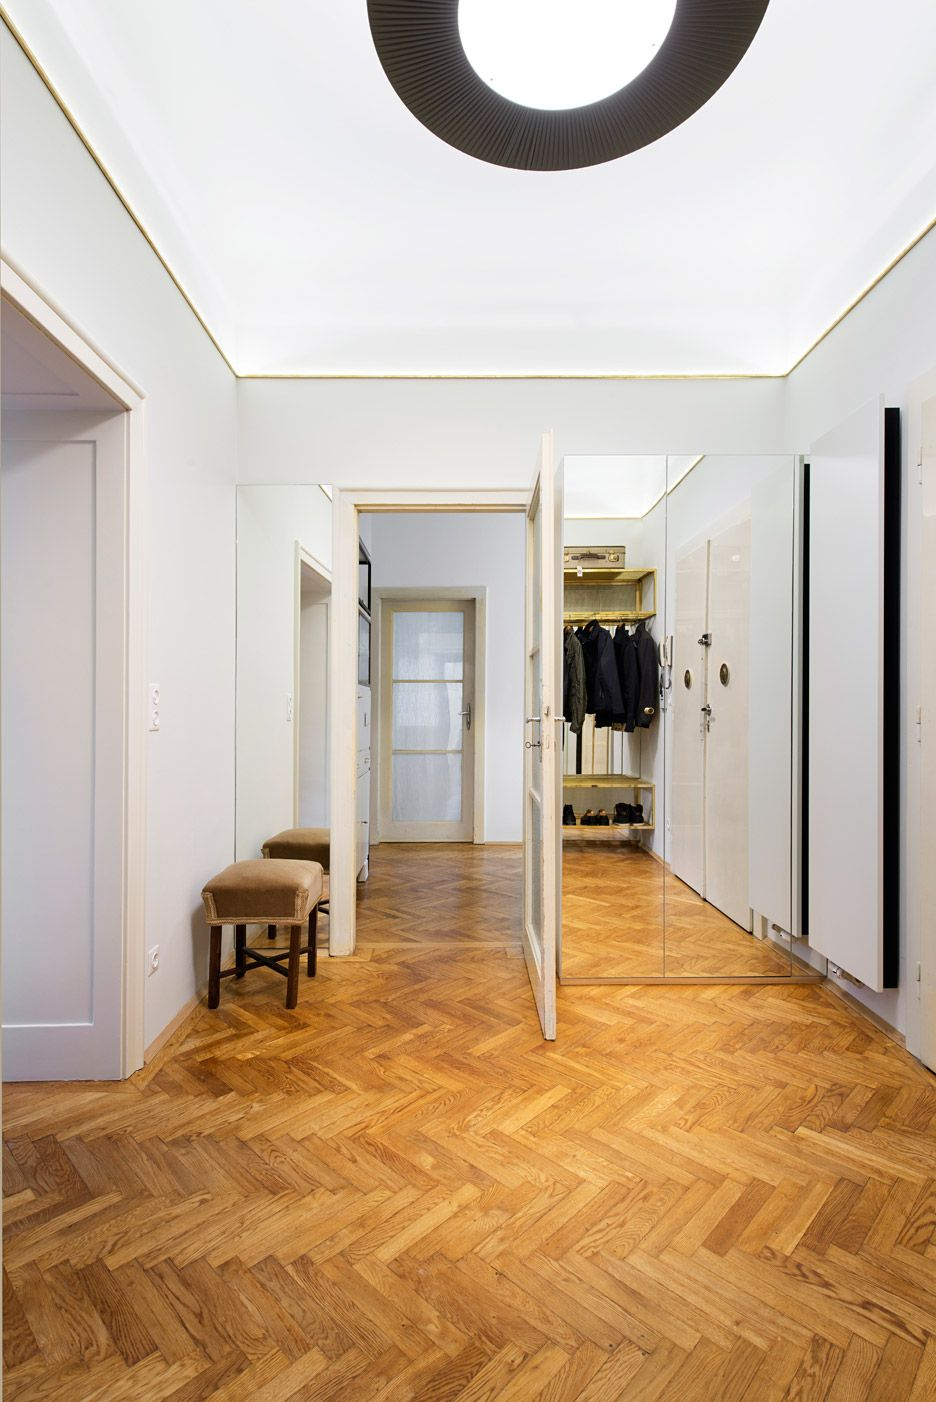 Ifub uncovers parquet flooring in 1930s art deco apartment for Decoration maison 1930 renove